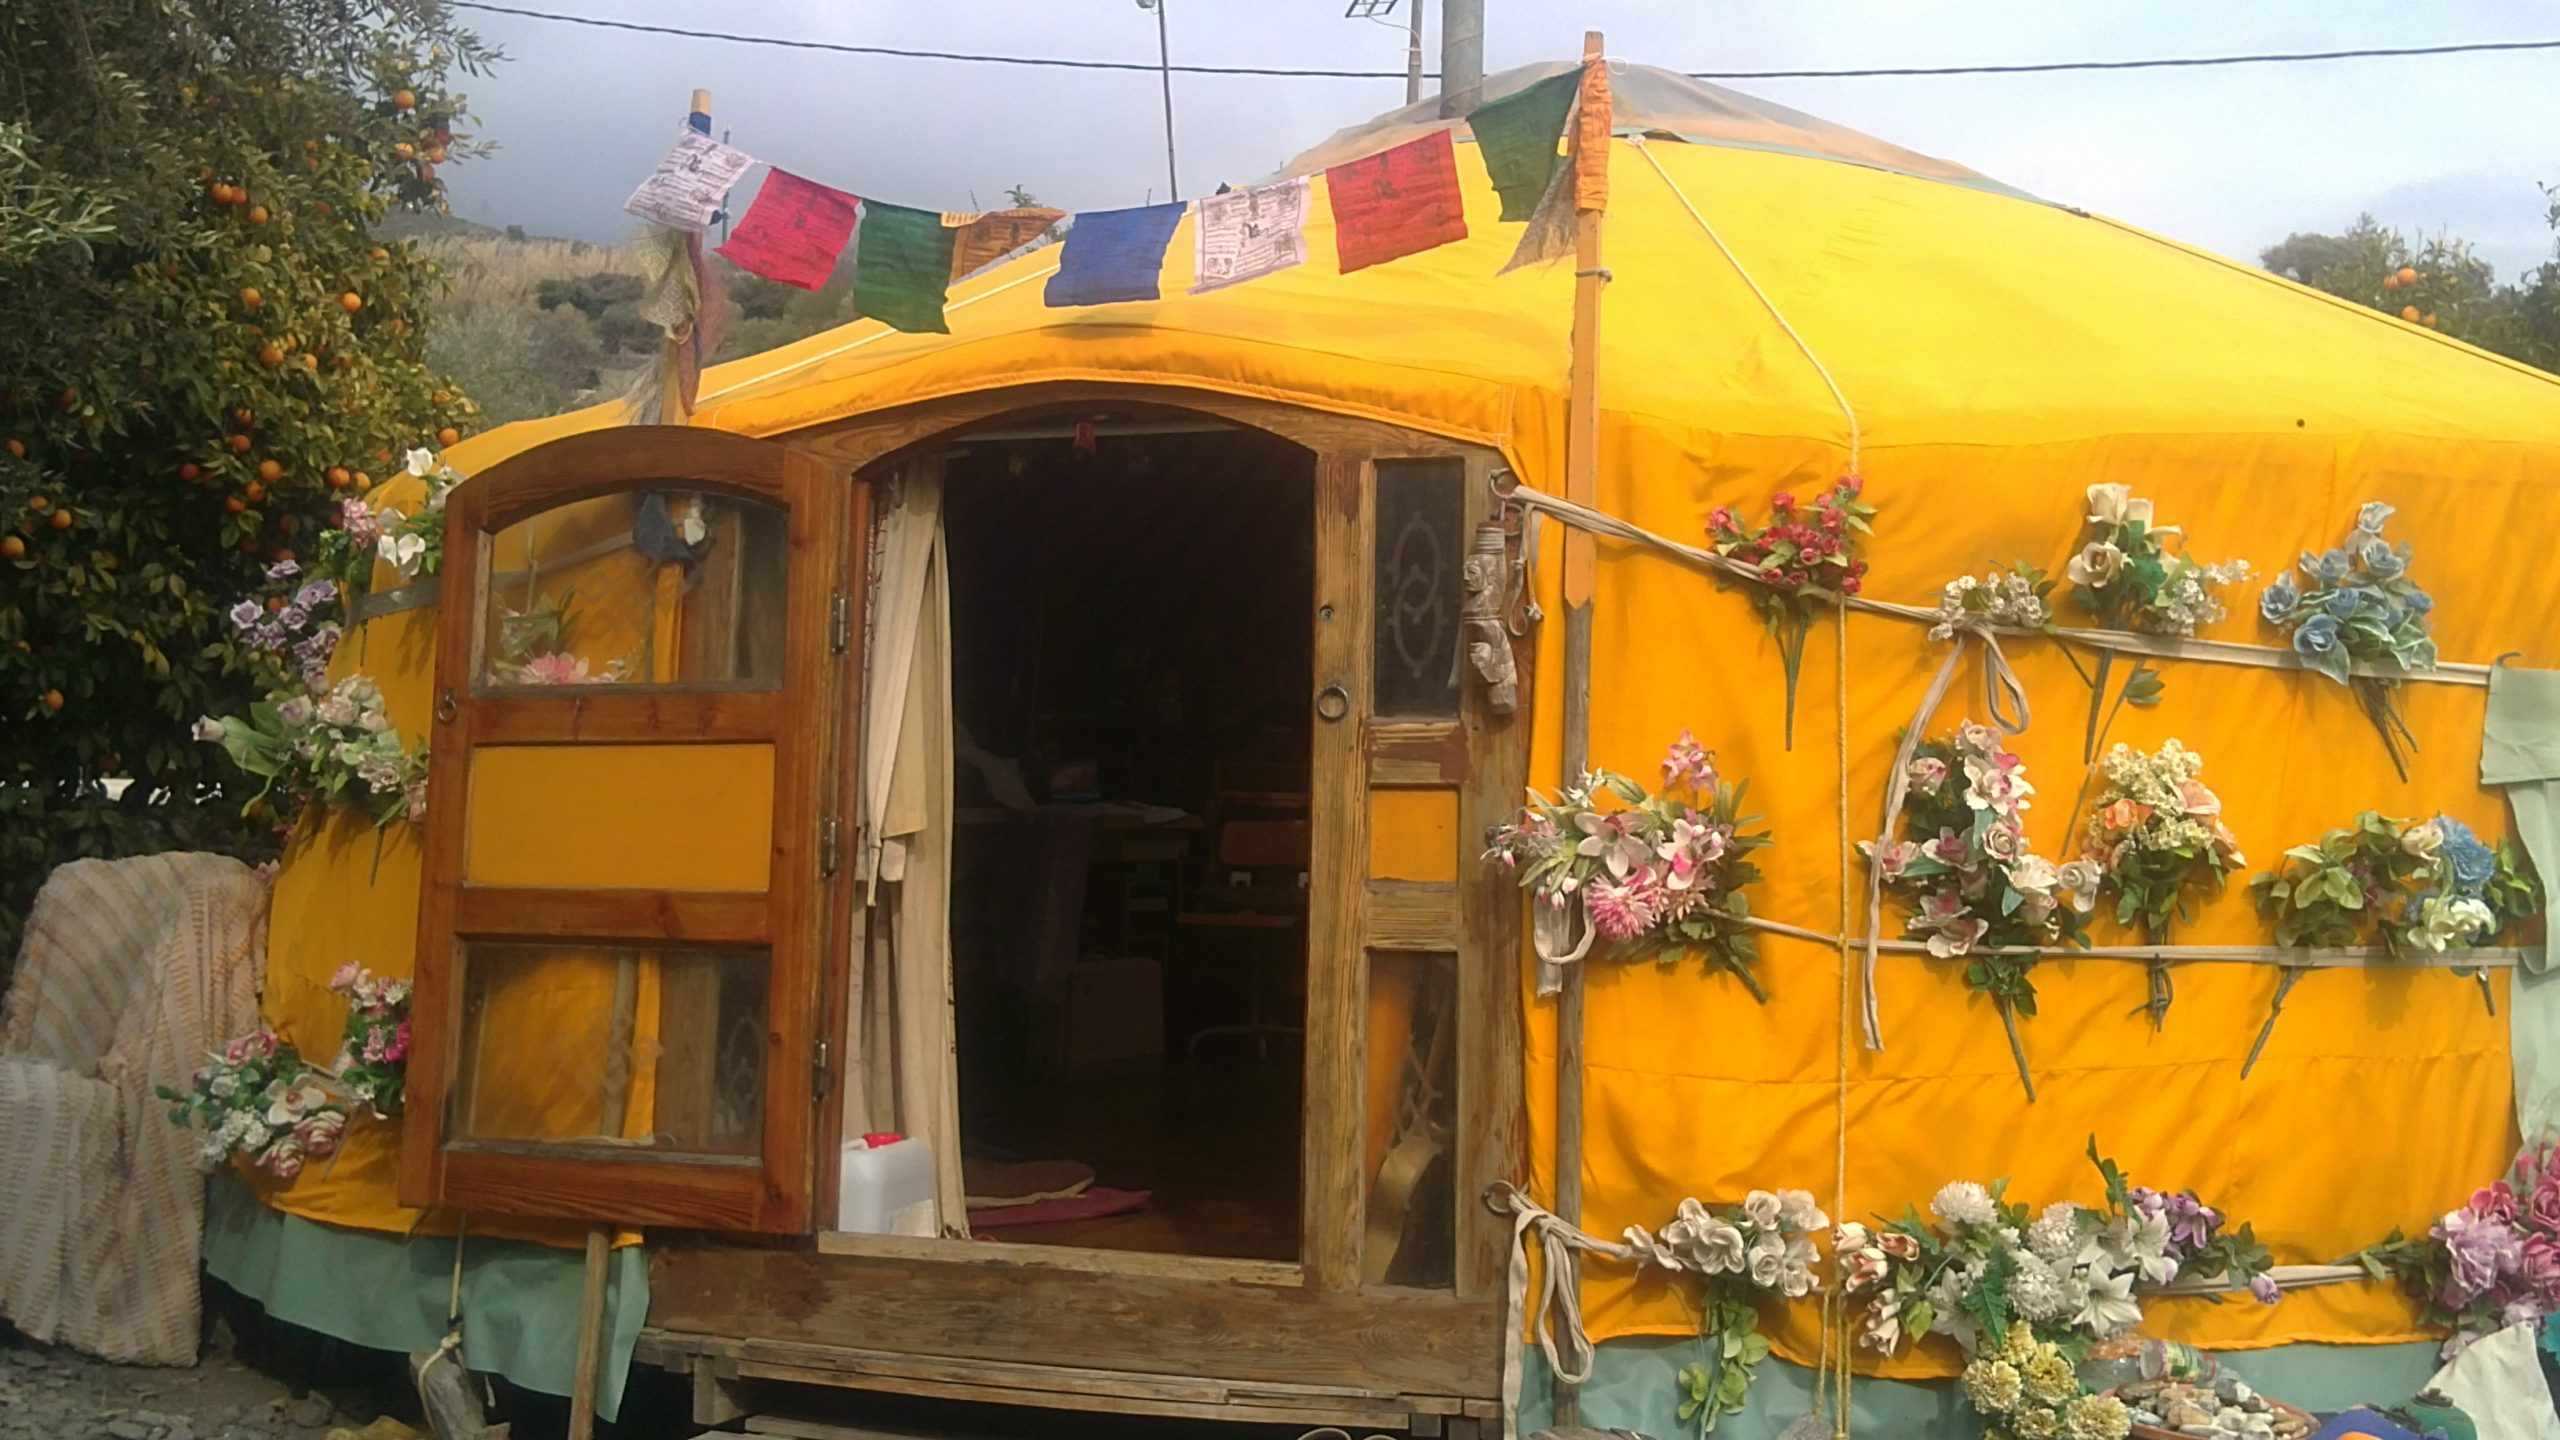 Yellow Yurt with Flowers